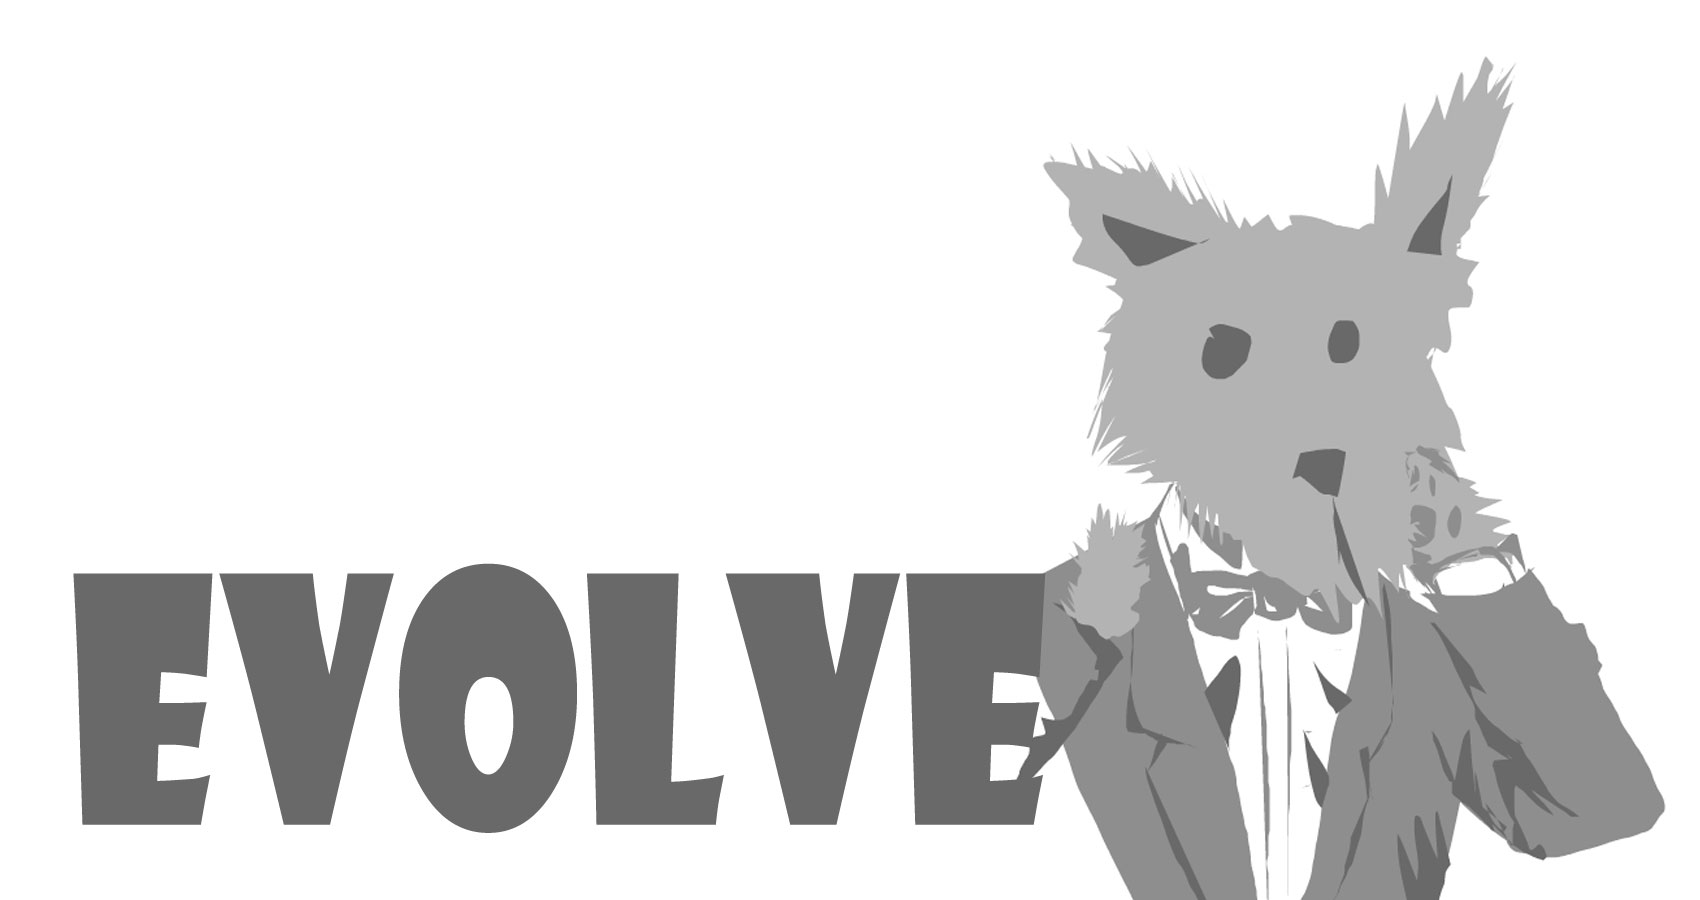 Evolve written by Becca Lotus at Spillwords.com